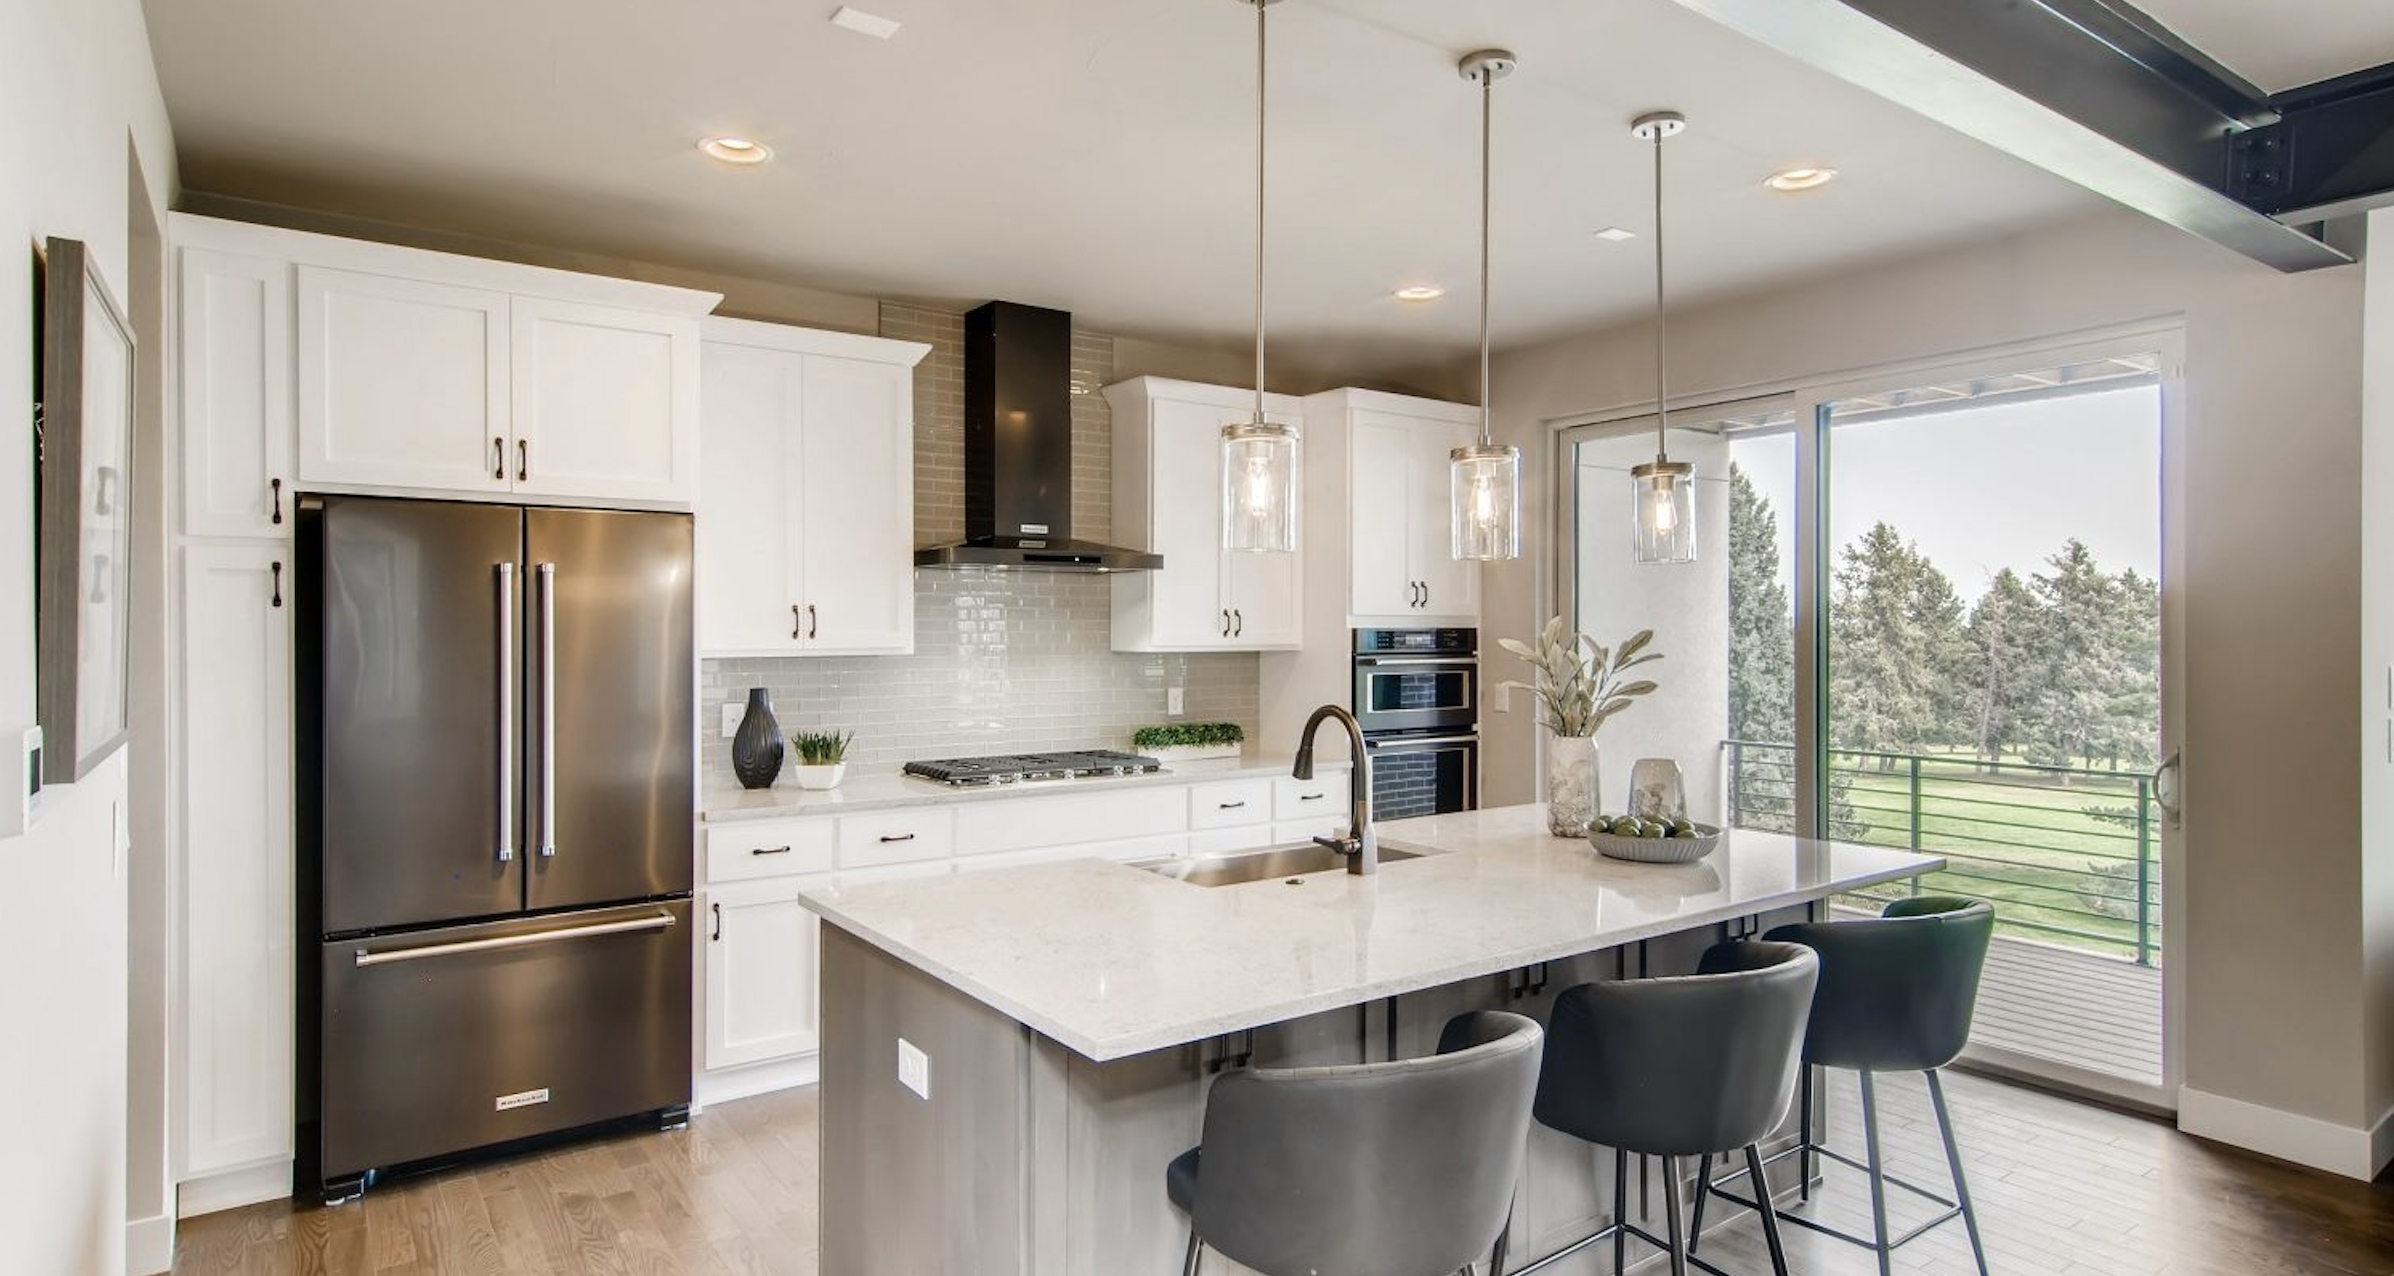 5390' Community by Koelbel in the Berkeley Tennyson Neighborhood Denver New Construction Homes For Sale Kitchen